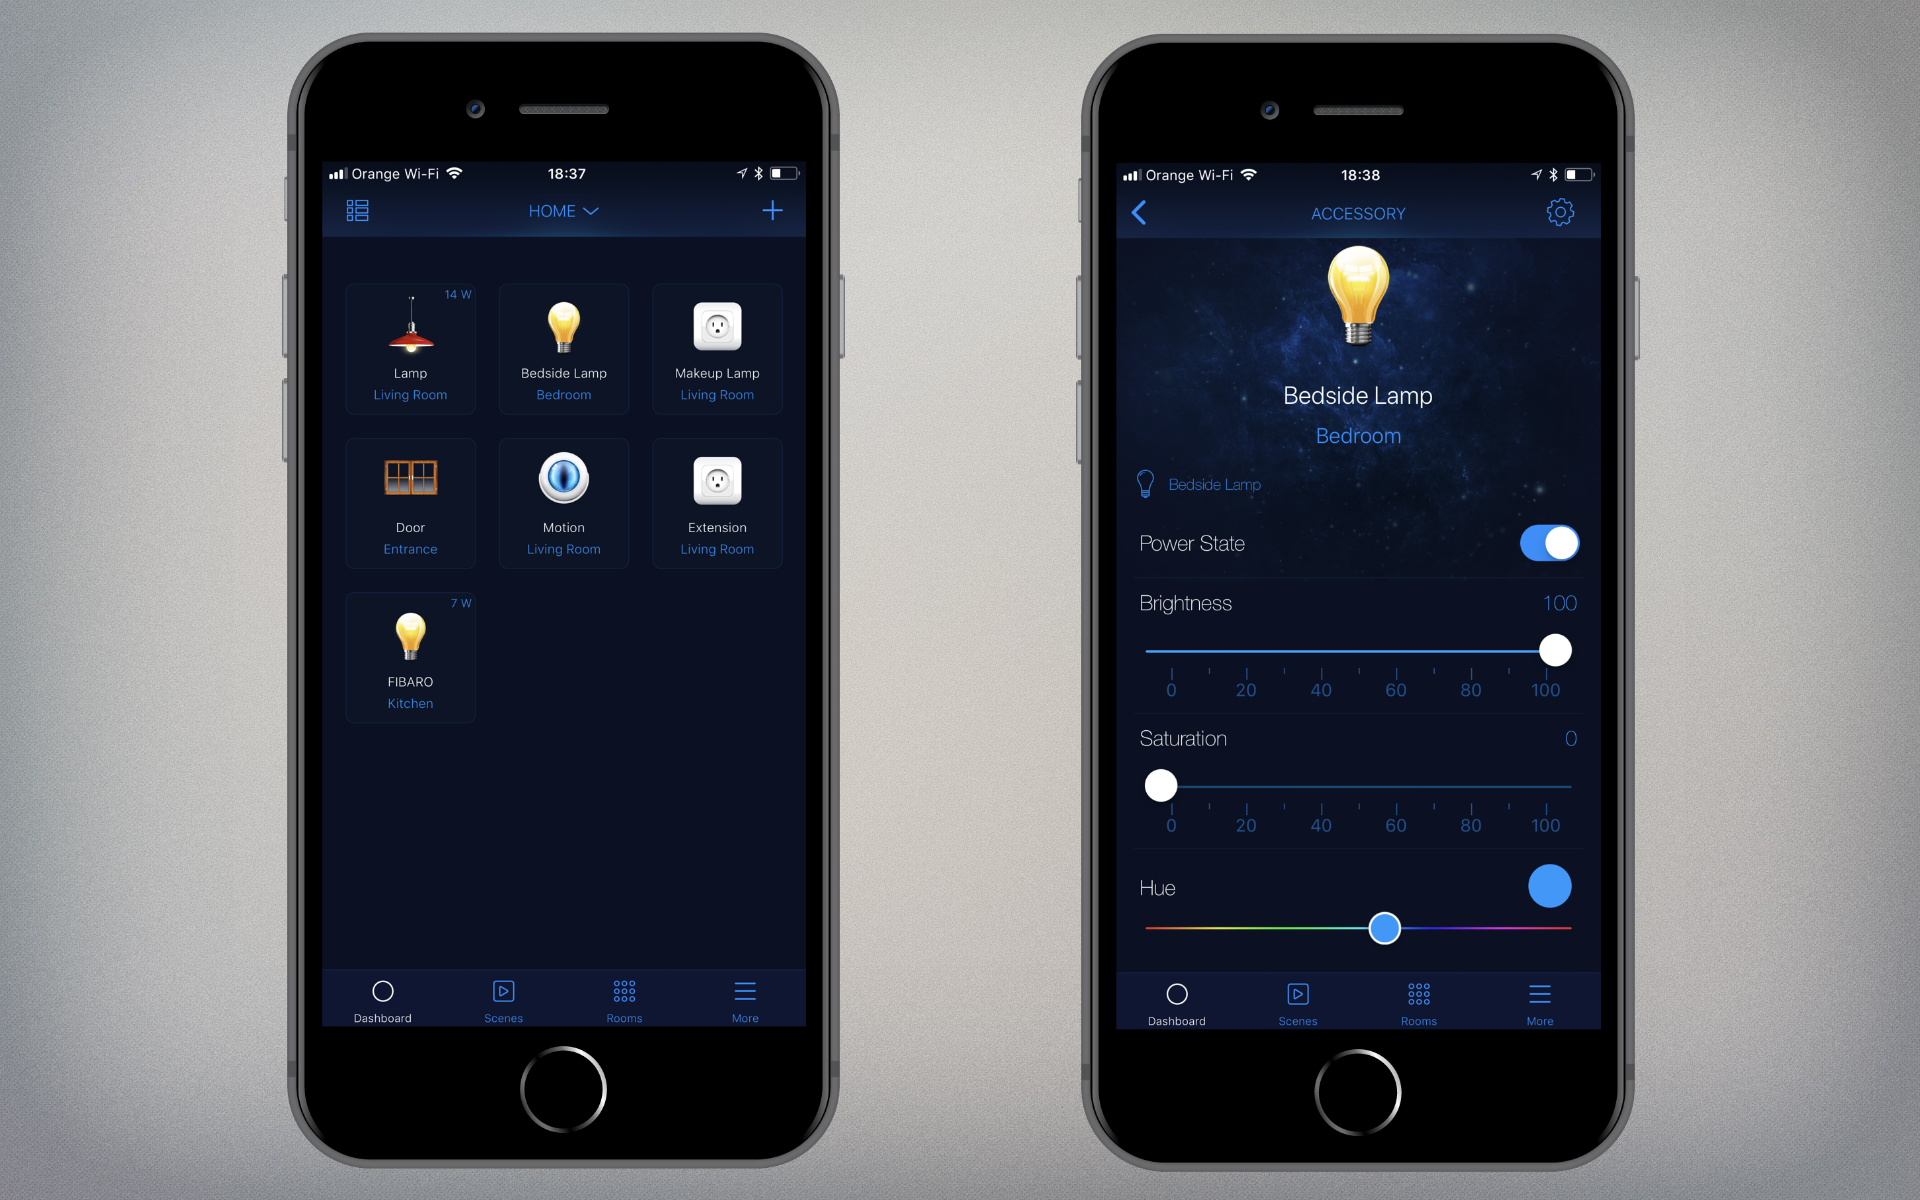 Fibaro for HomeKit Devices app on an iPhone 8 Plus